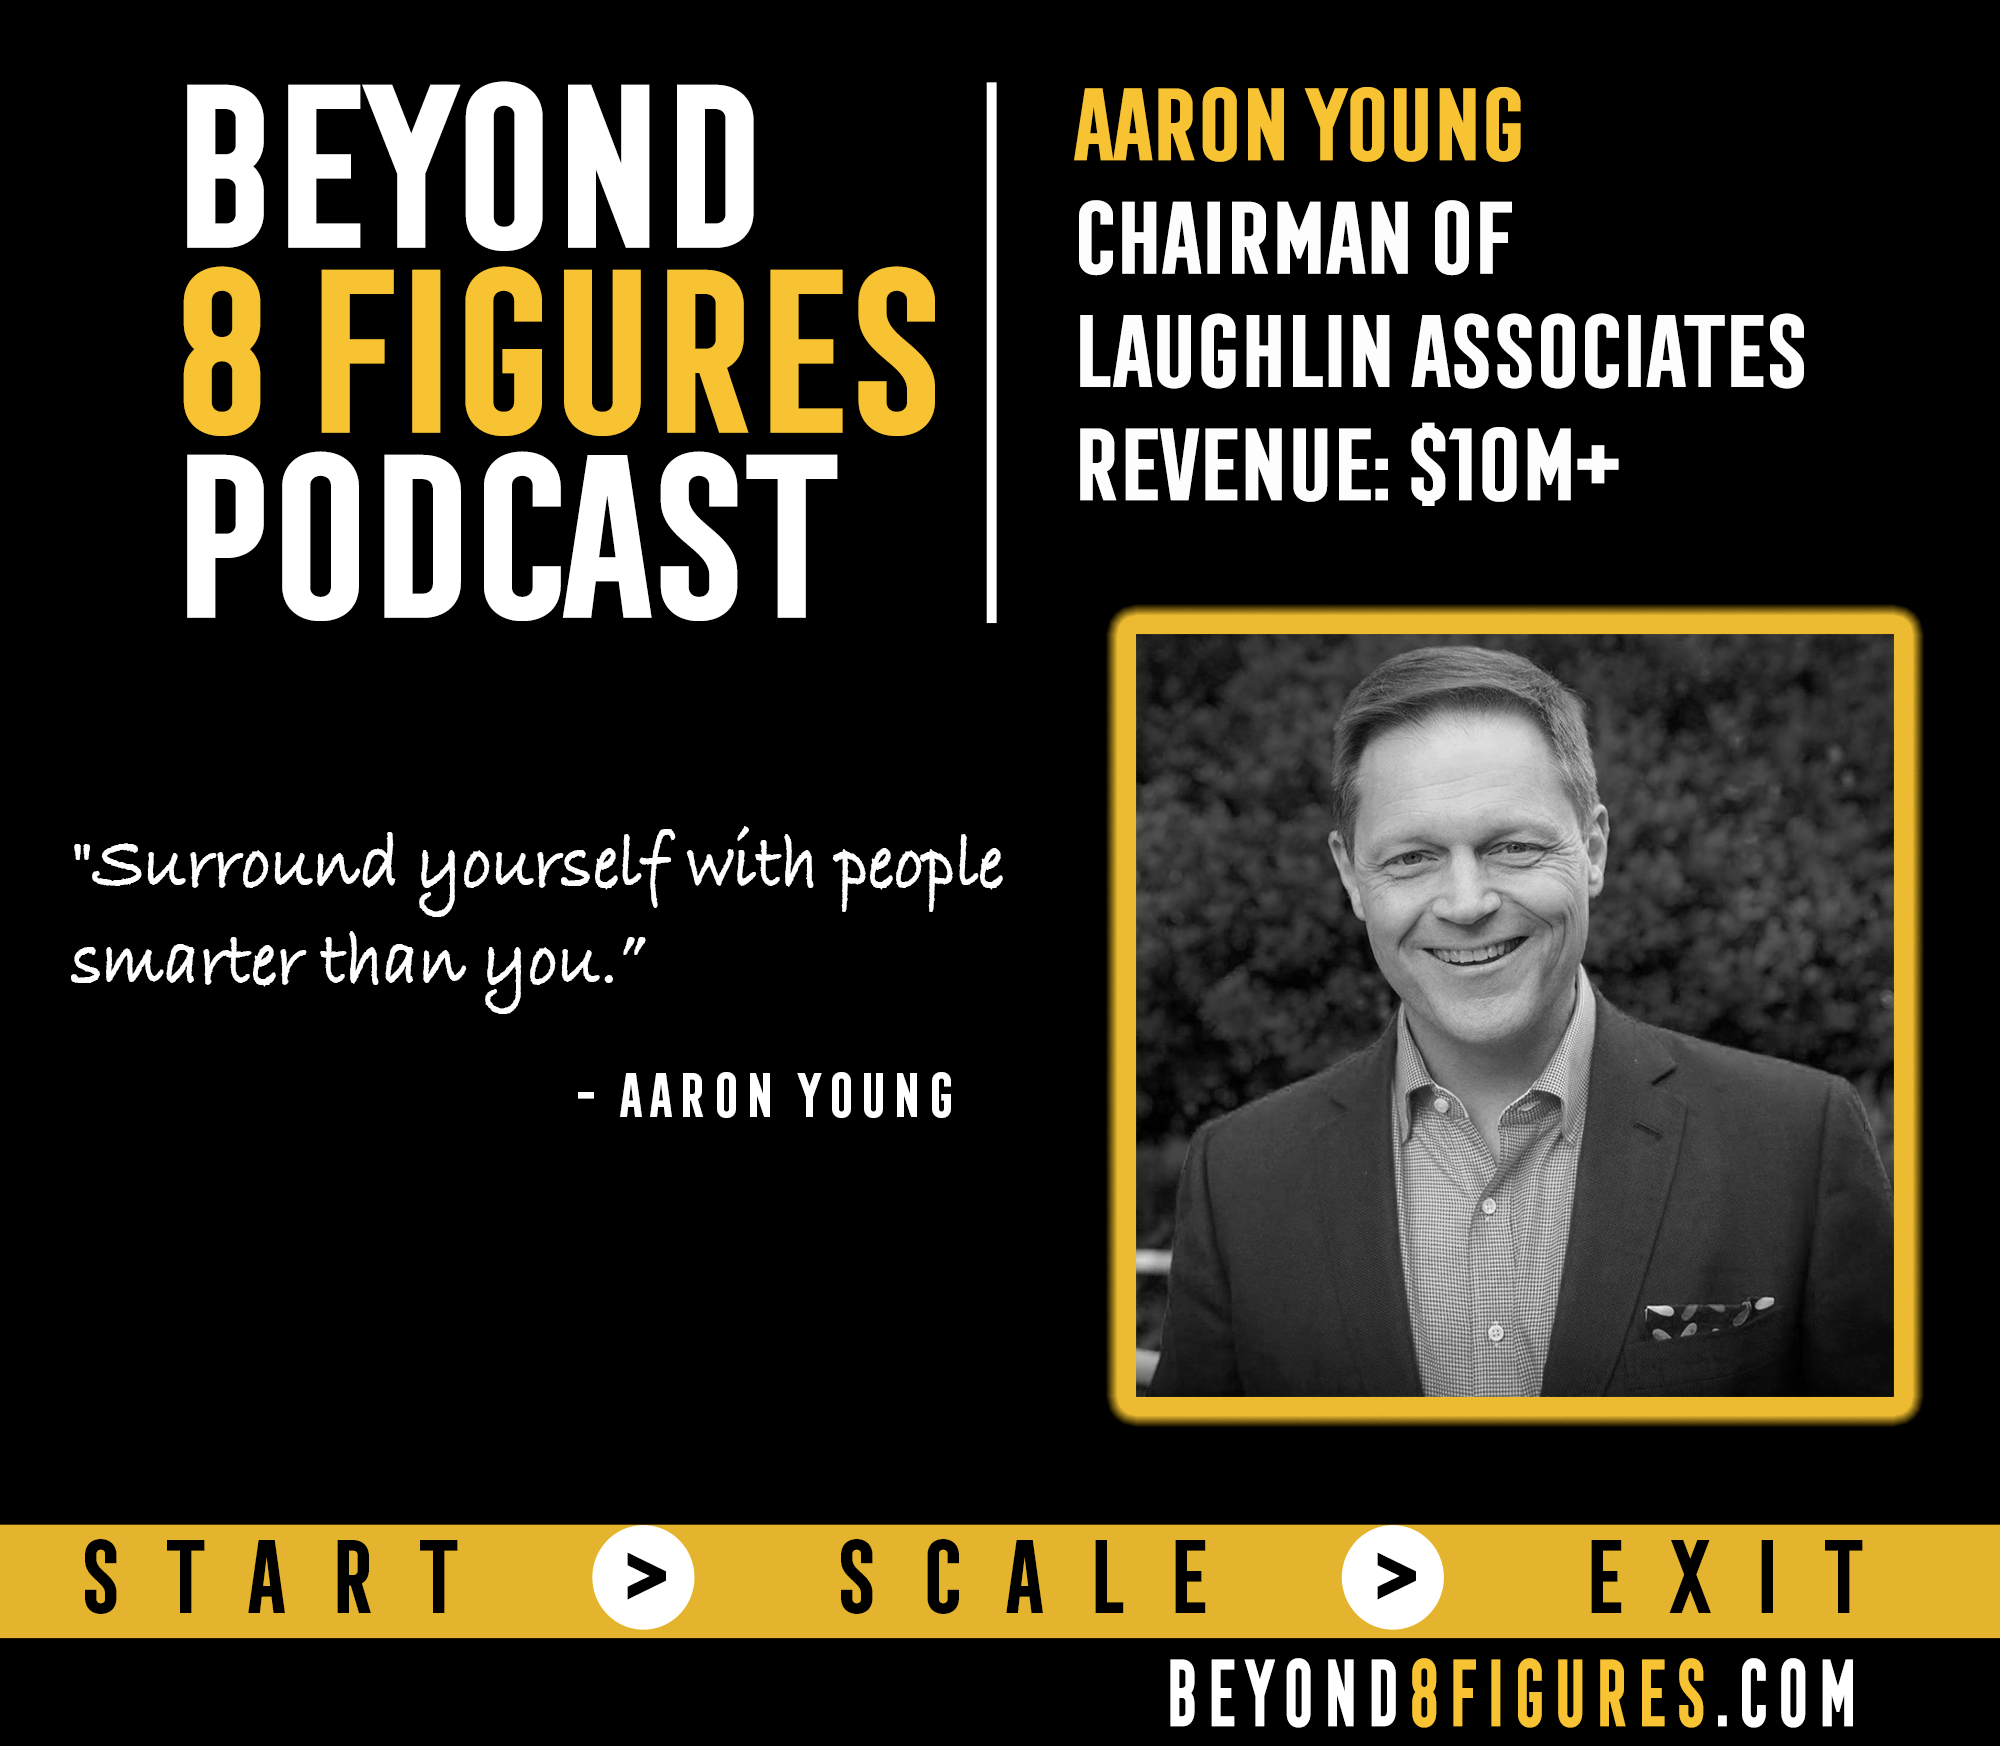 $10M+ in Annual Revenue – Aaron Young Runs Multiple Companies